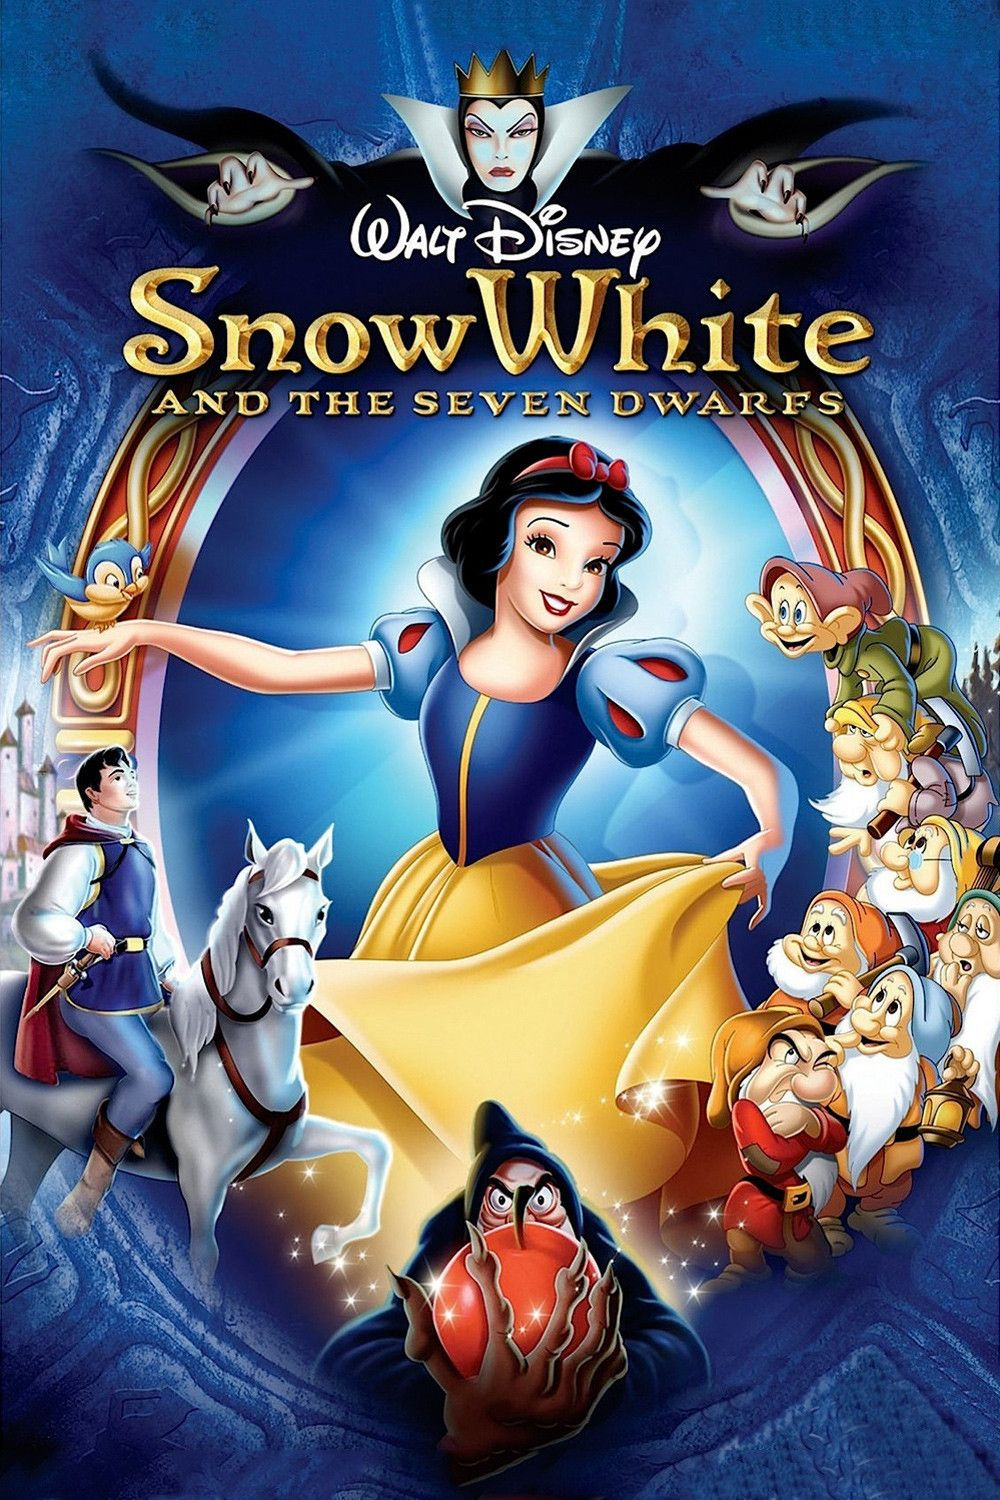 click image to watch Snow White and the Seven Dwarfs (1937)